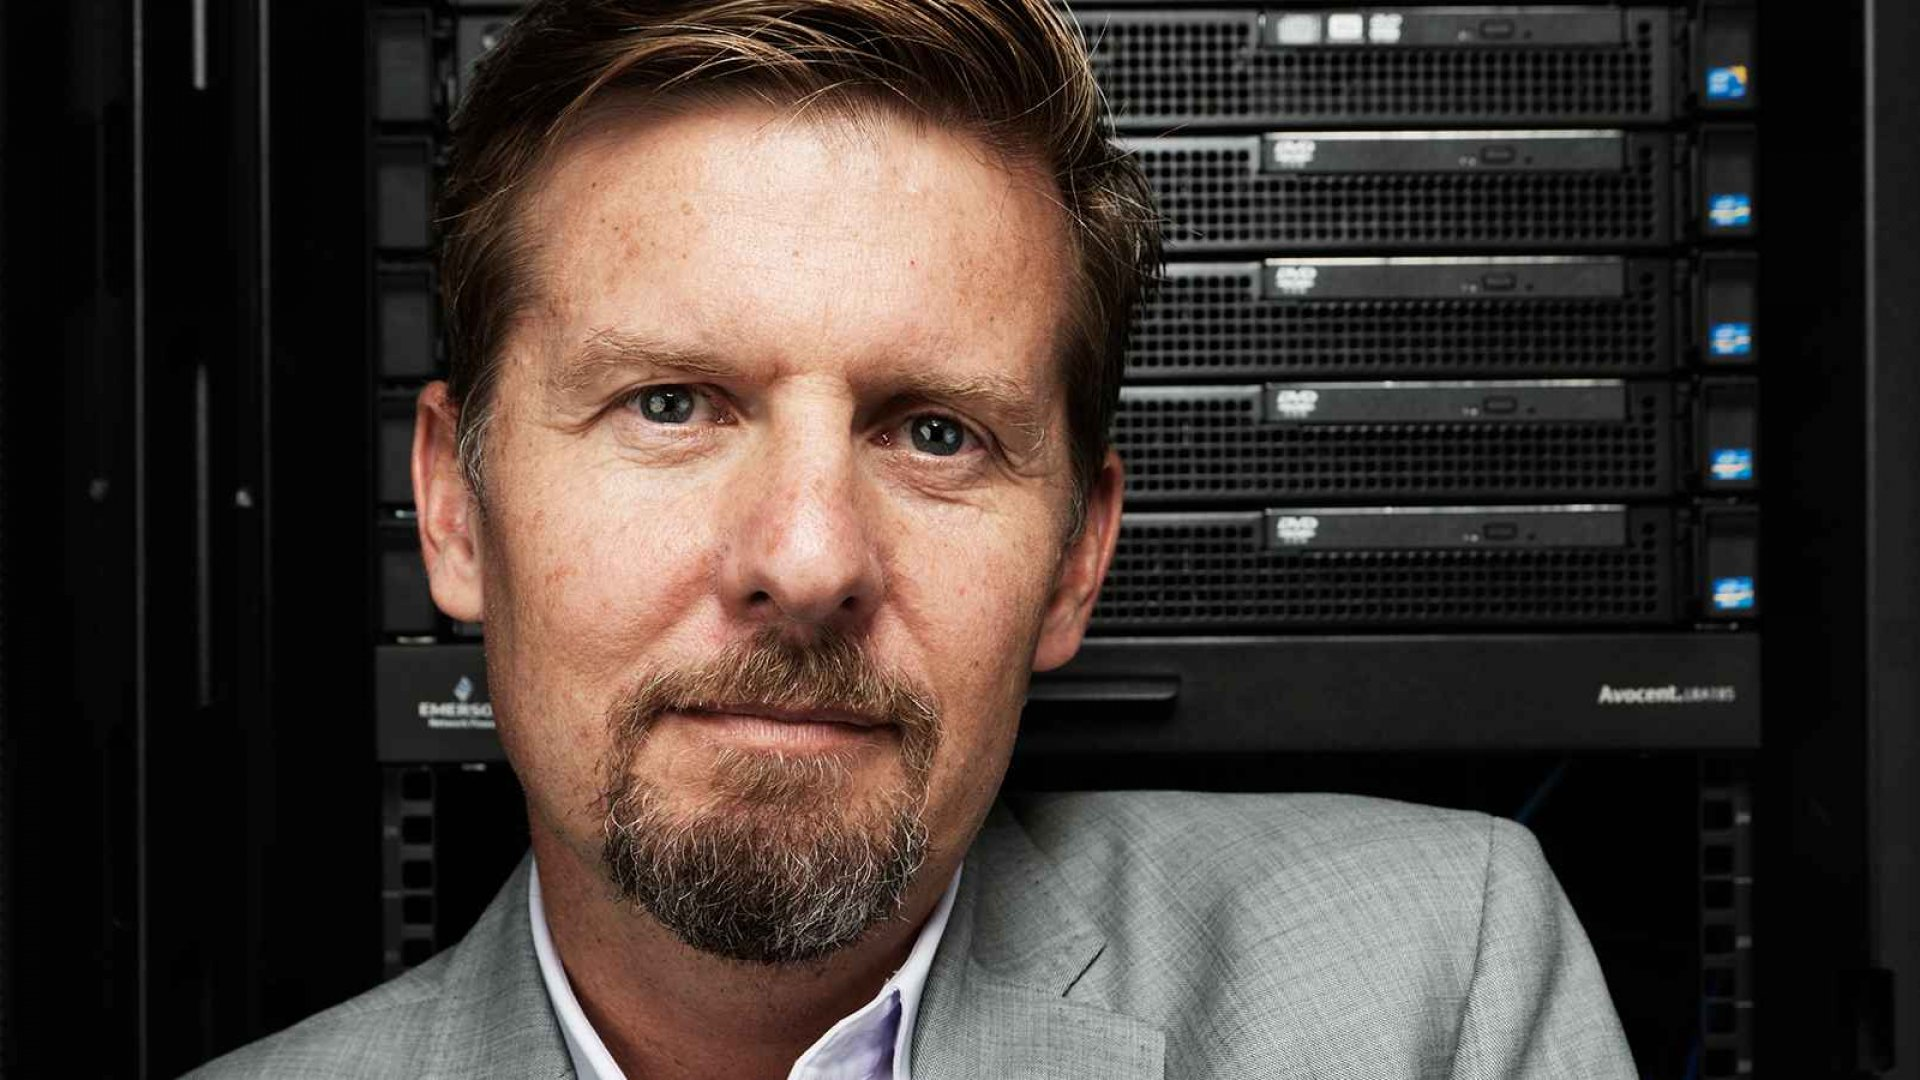 Stuart McClure, founder, CEO, and president of Cylance.